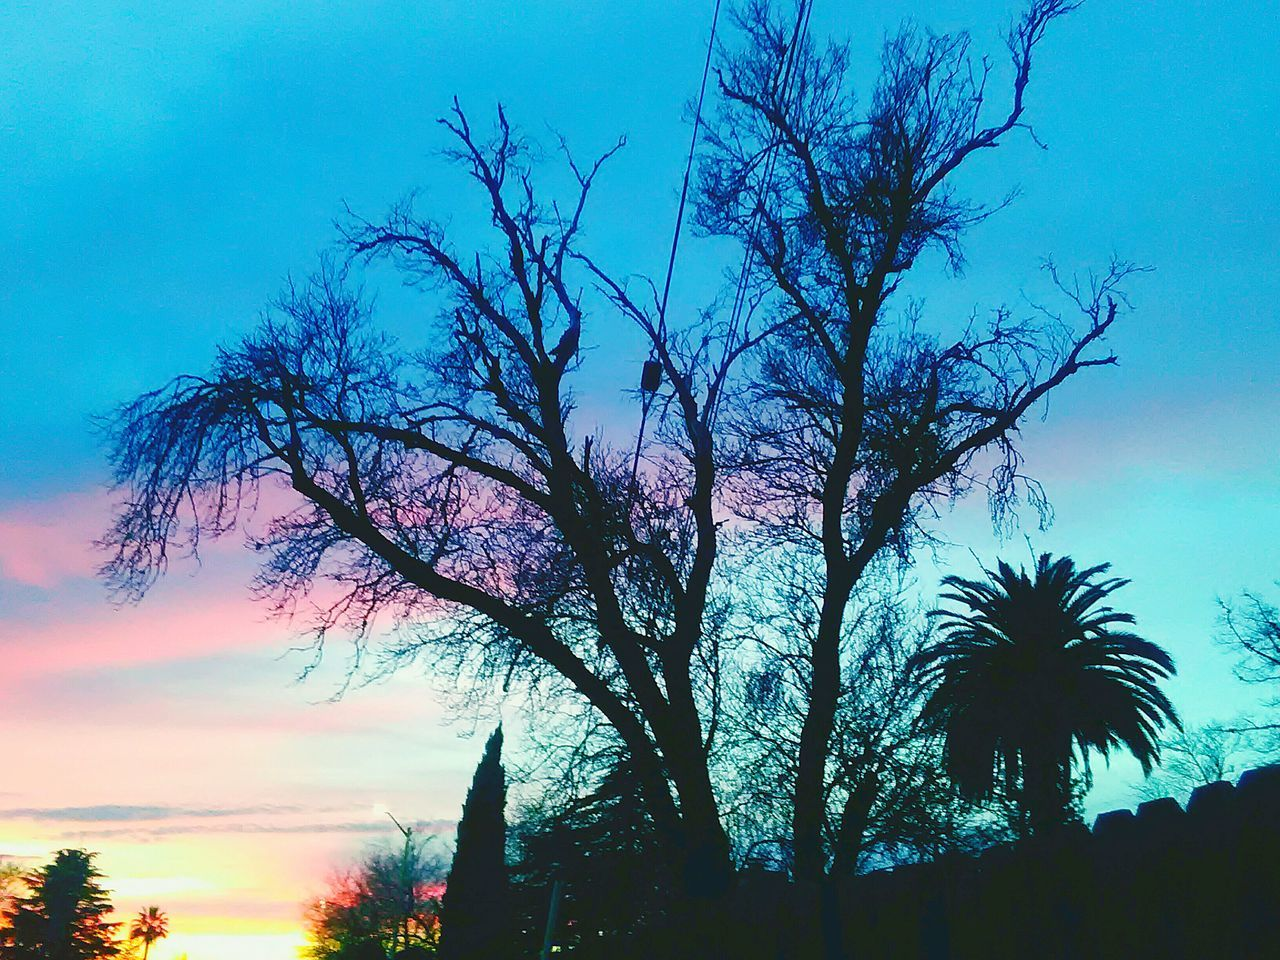 tree, silhouette, sky, low angle view, beauty in nature, nature, no people, scenics, growth, tree trunk, tranquility, outdoors, sunset, palm tree, branch, day